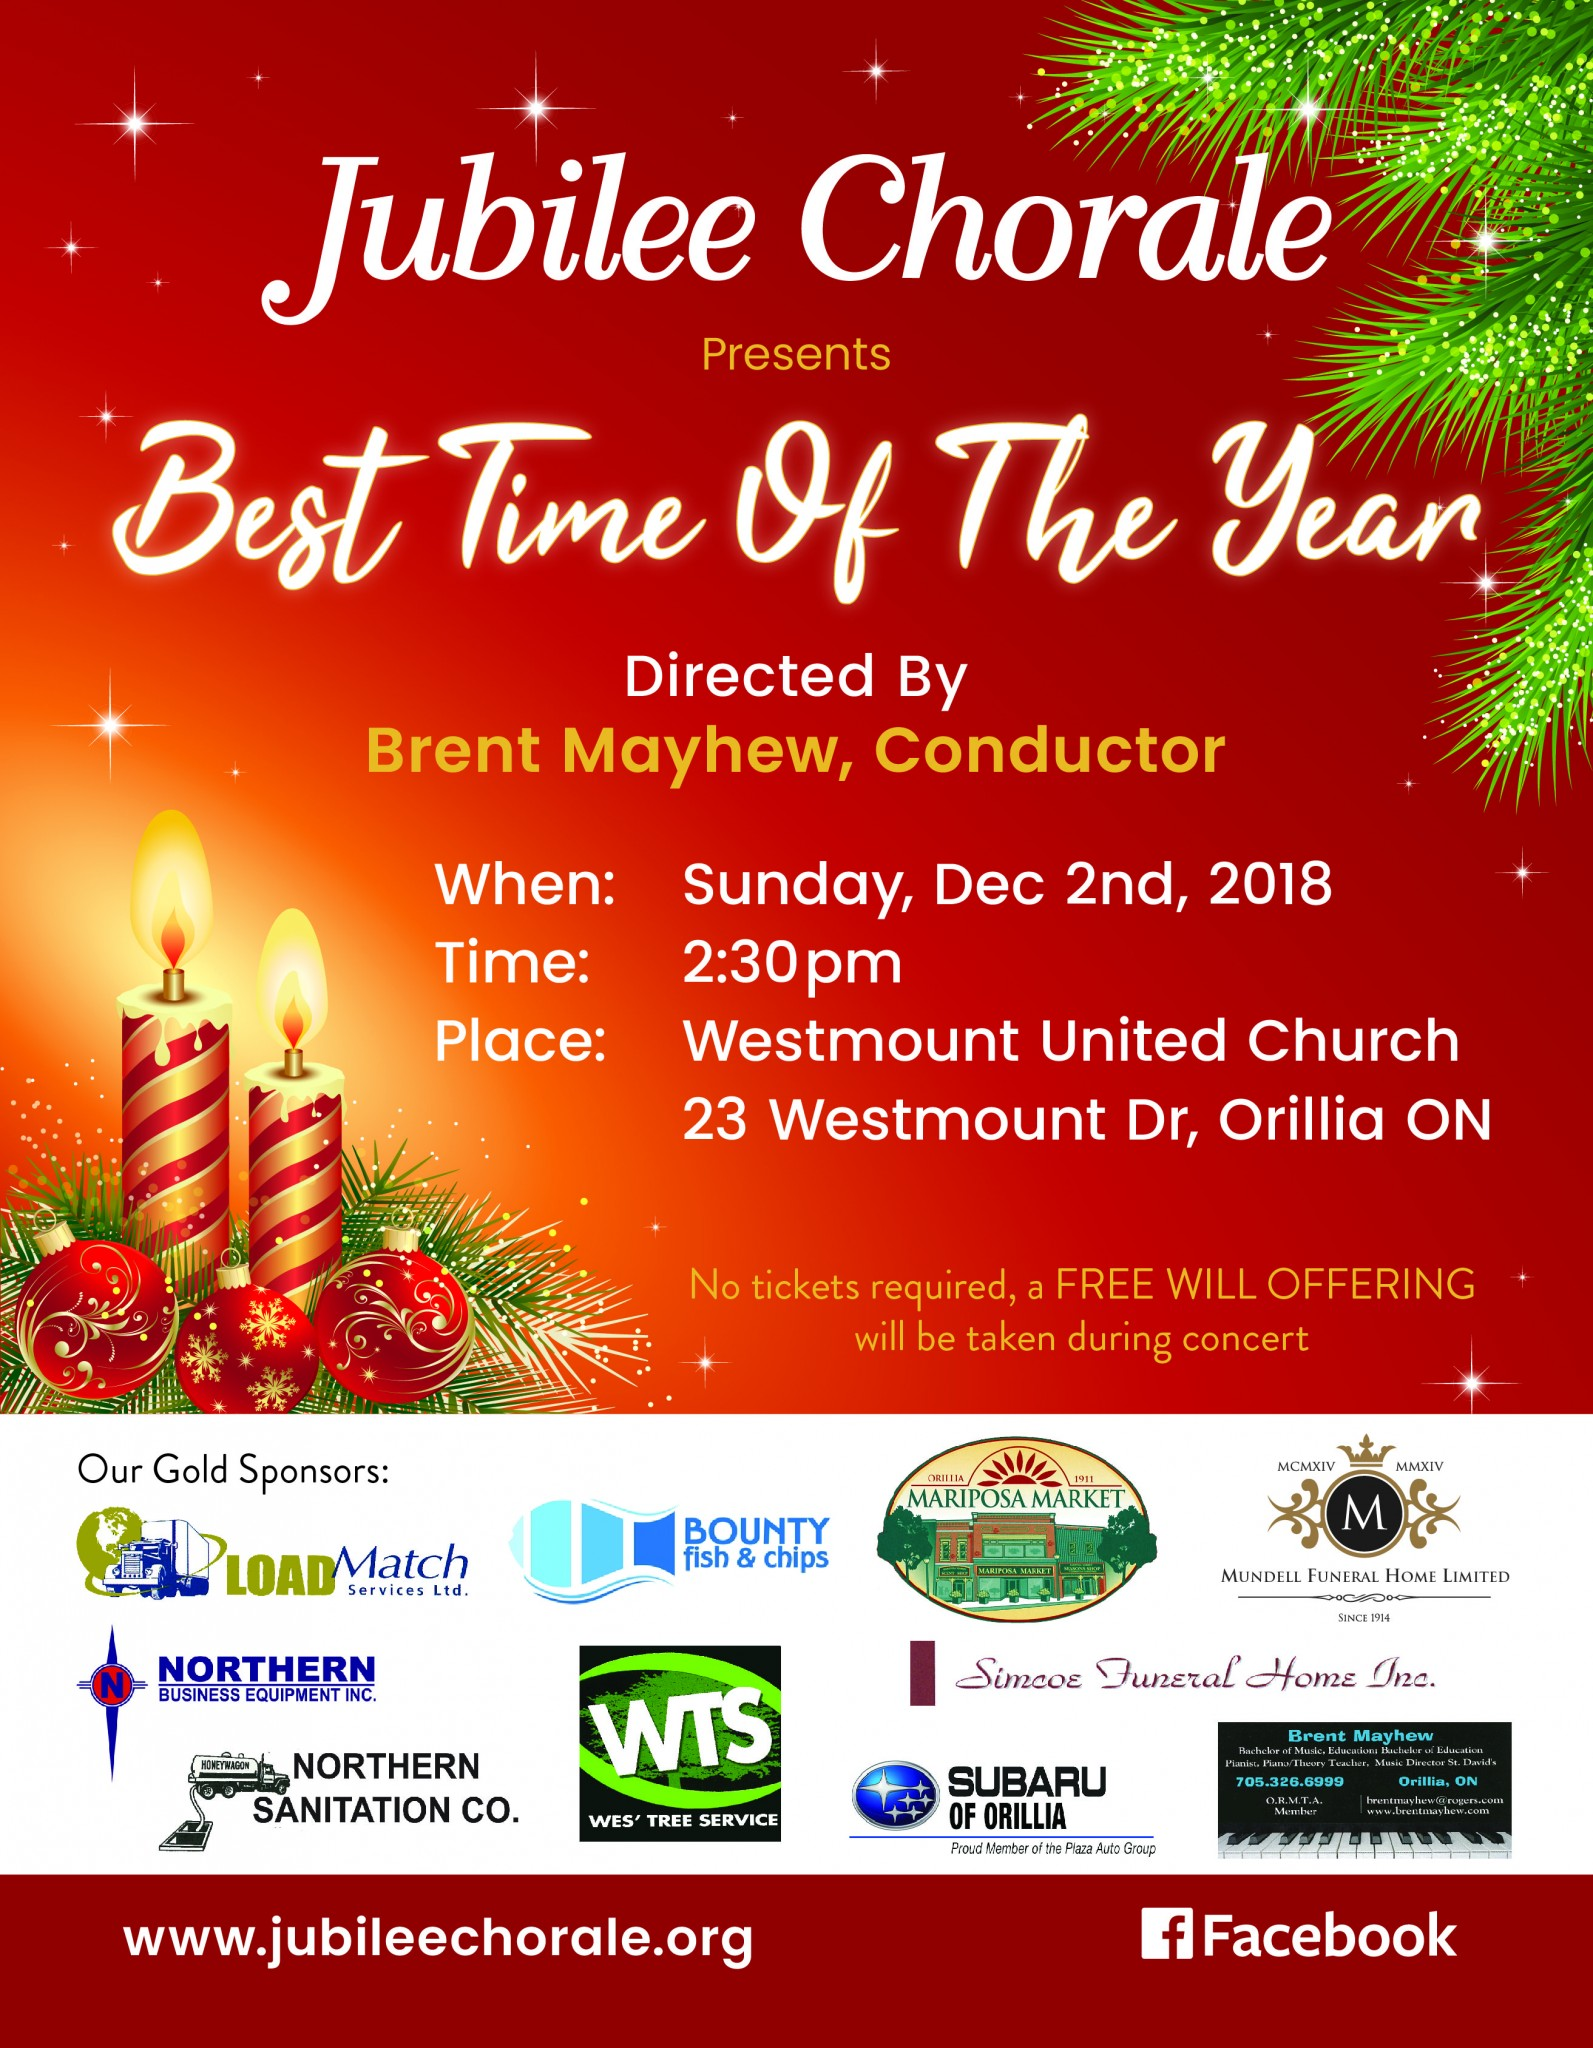 JC Dec 2 18 poster - JUBILEE CHORALE CONCERT - BEST TIME OF THE YEAR